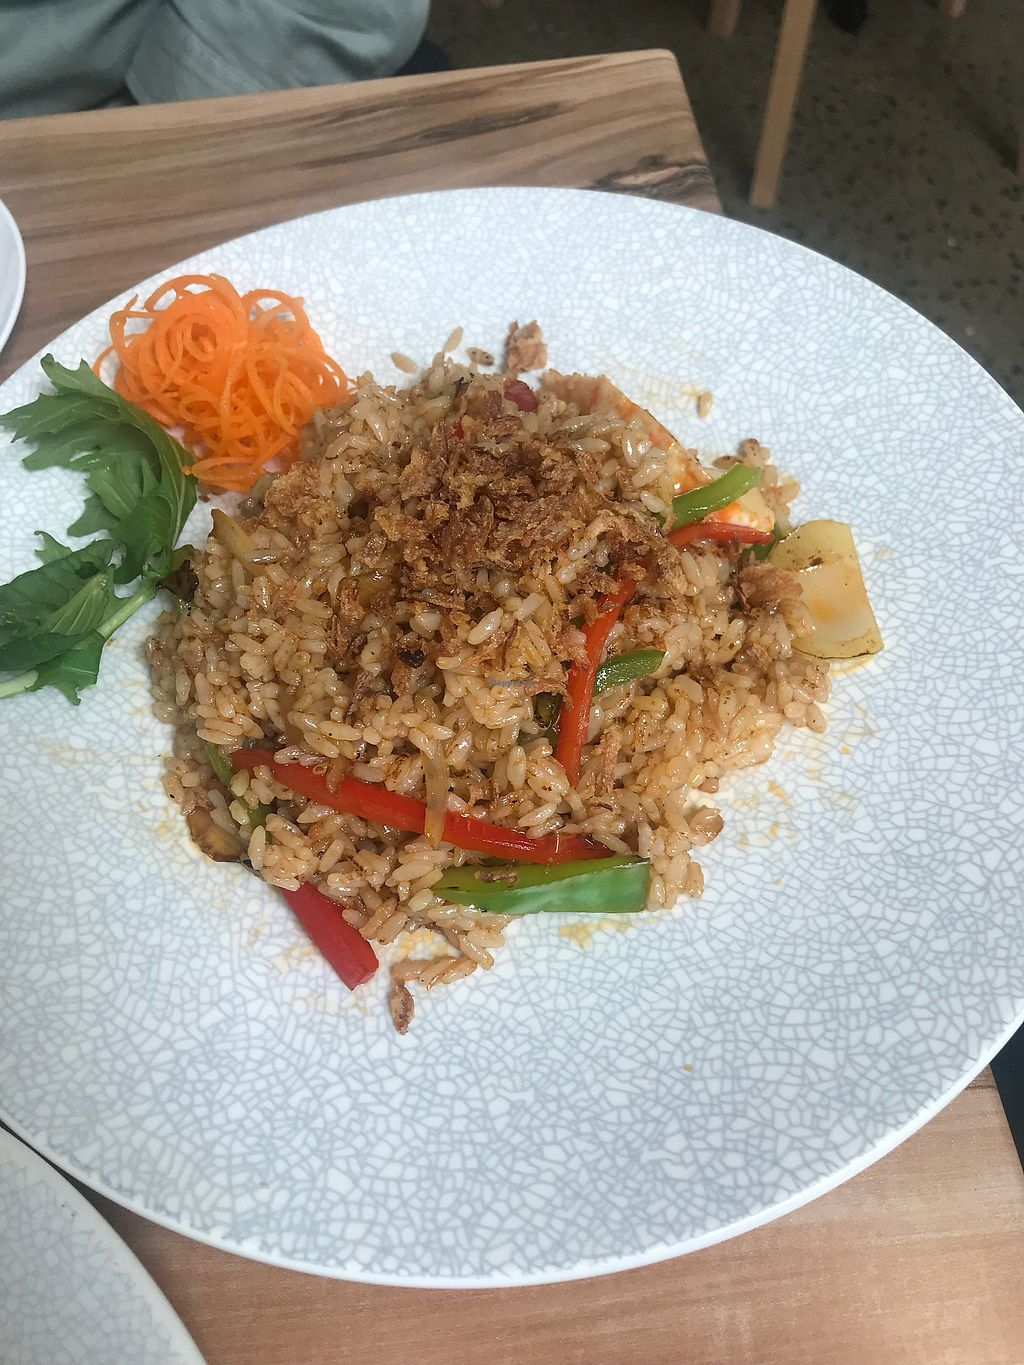 "Photo of Vegera  by <a href=""/members/profile/emilycroww"">emilycroww</a> <br/>Special fried rice <br/> March 21, 2018  - <a href='/contact/abuse/image/115175/373691'>Report</a>"